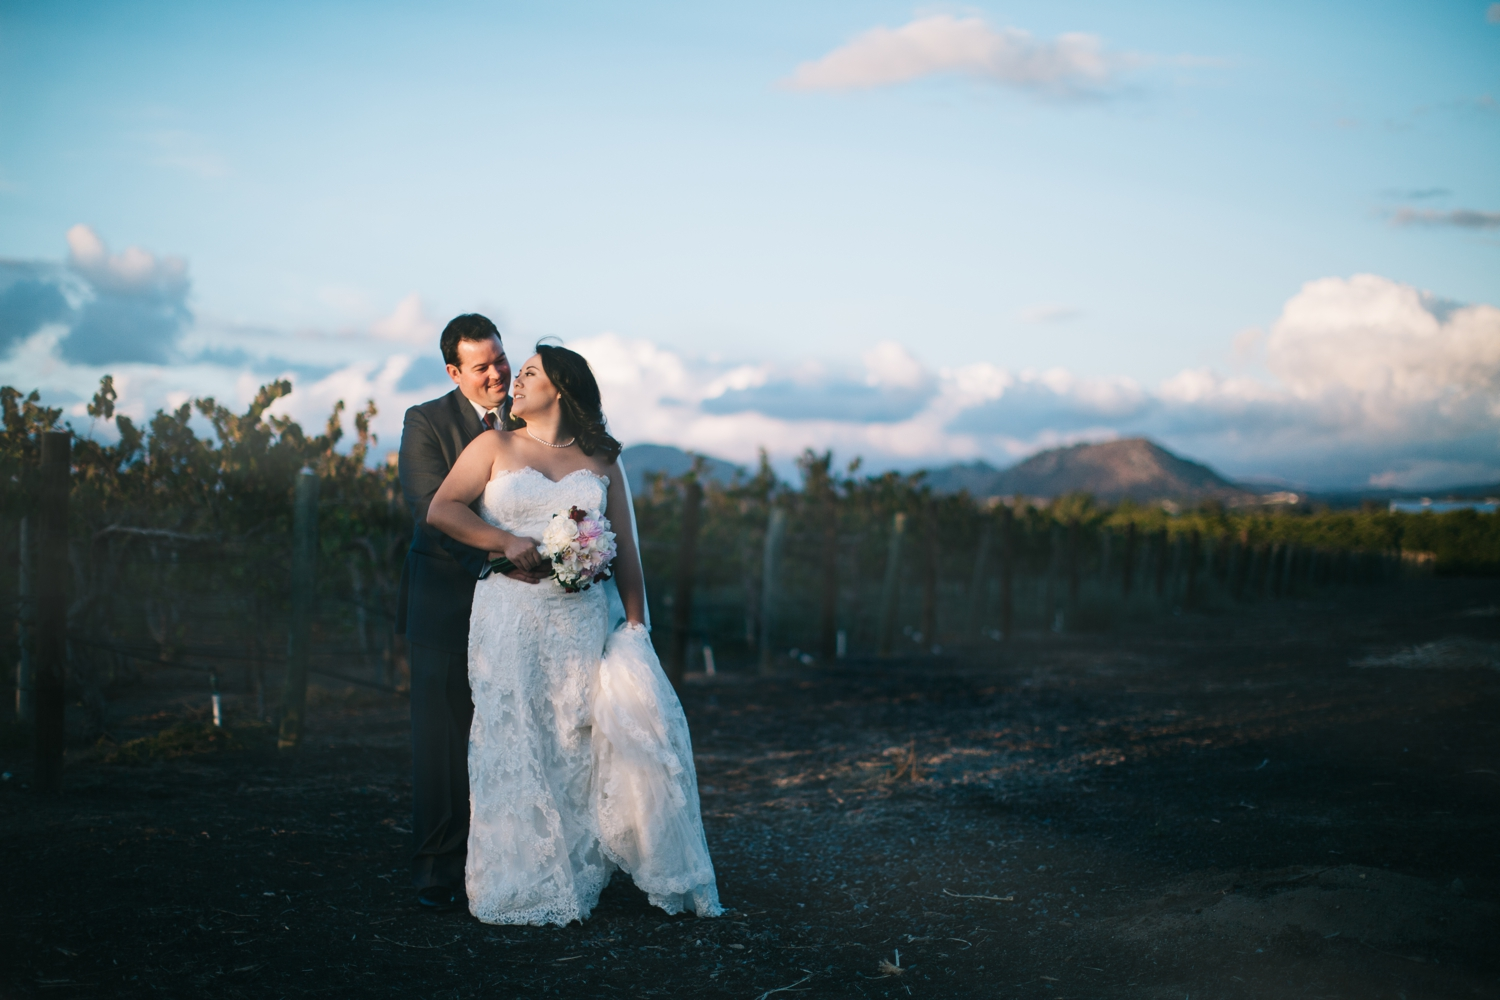 tina + ryan | Wiens Winery Temecula Wedding